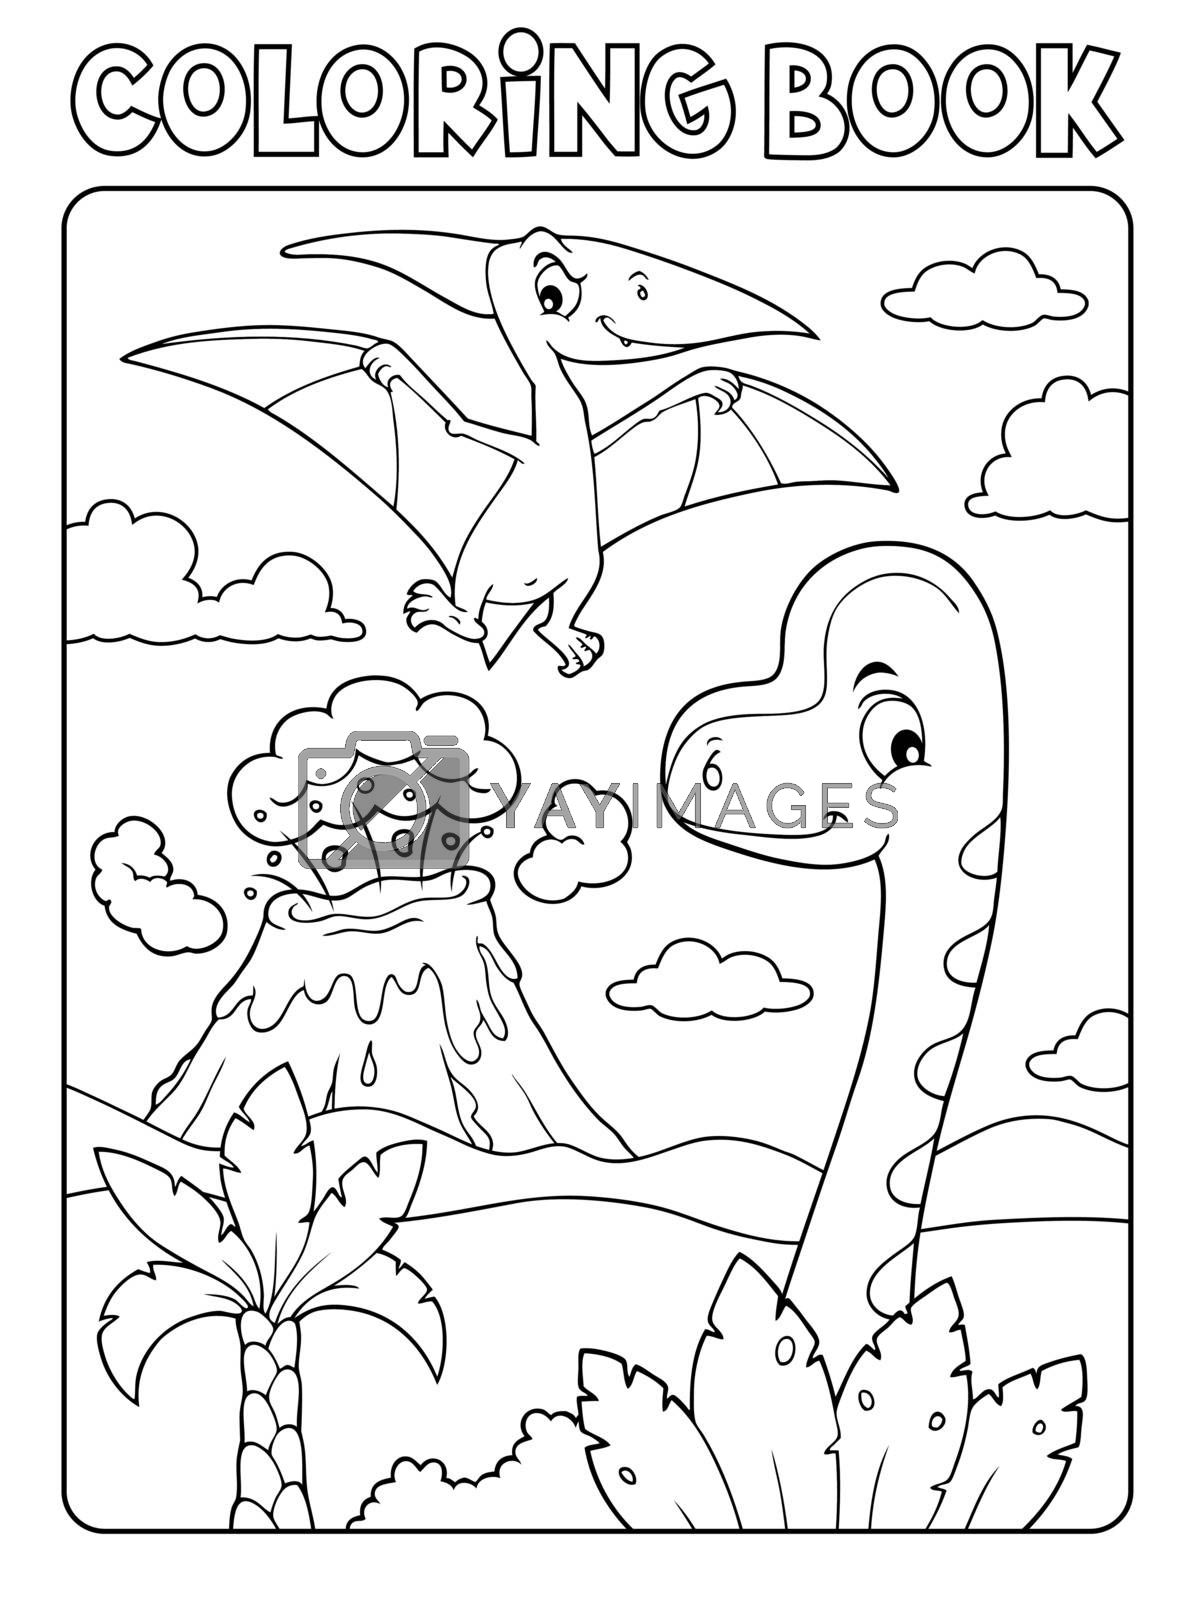 Coloring book dinosaur composition image 5 - eps10 vector illustration.